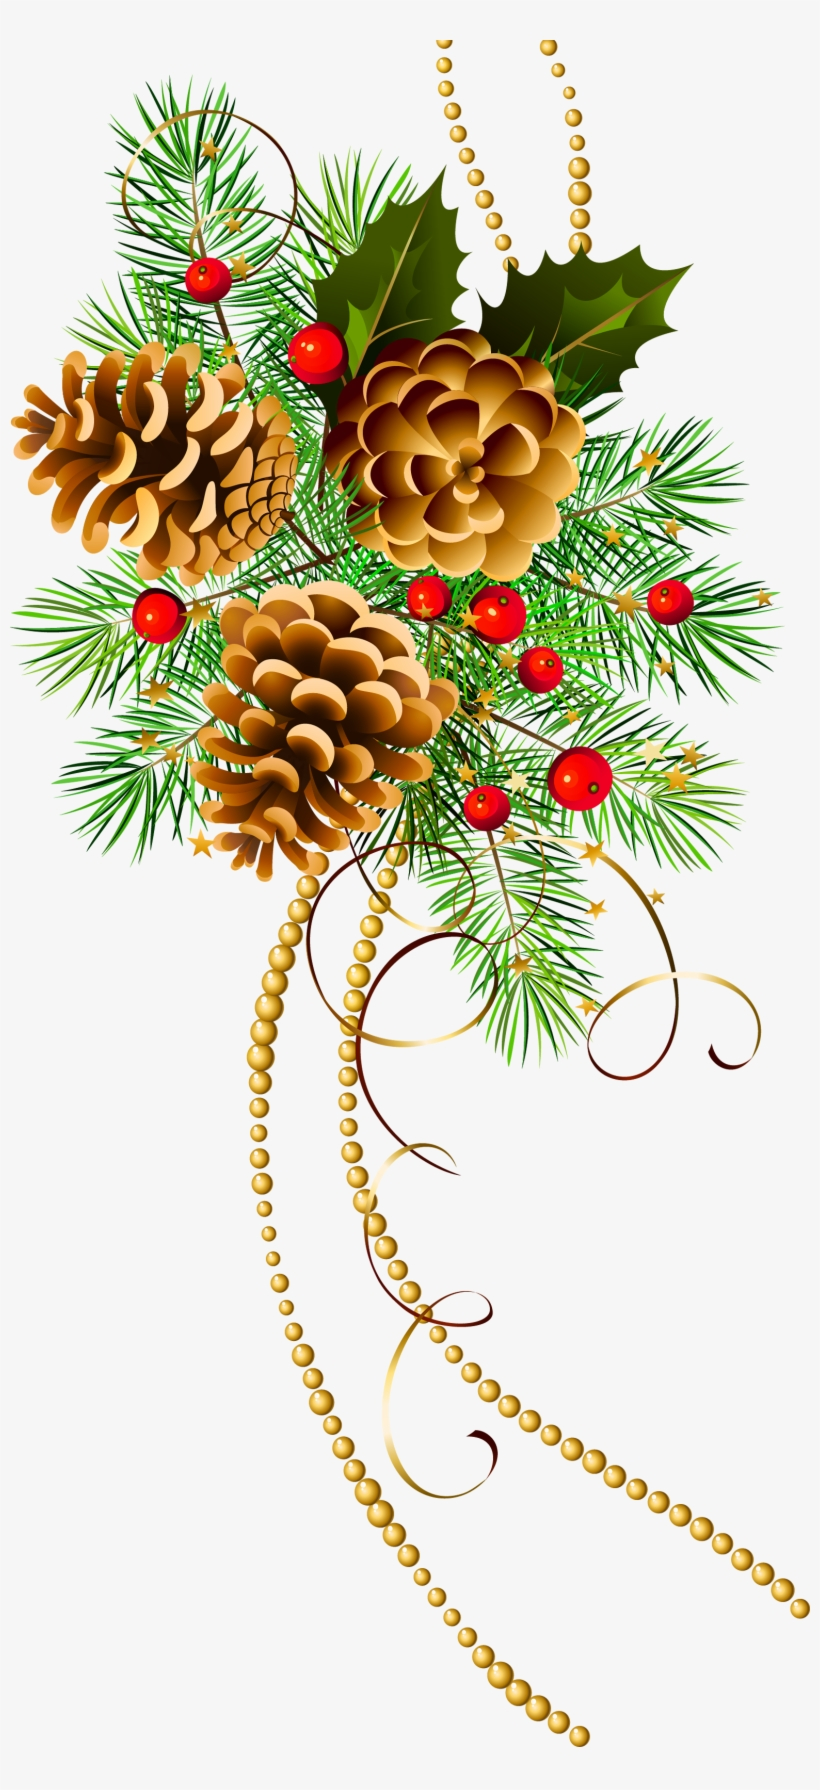 Christmas Pine Cone Png Graphic Download - Christmas Pine Cone Clip Art, transparent png #457451